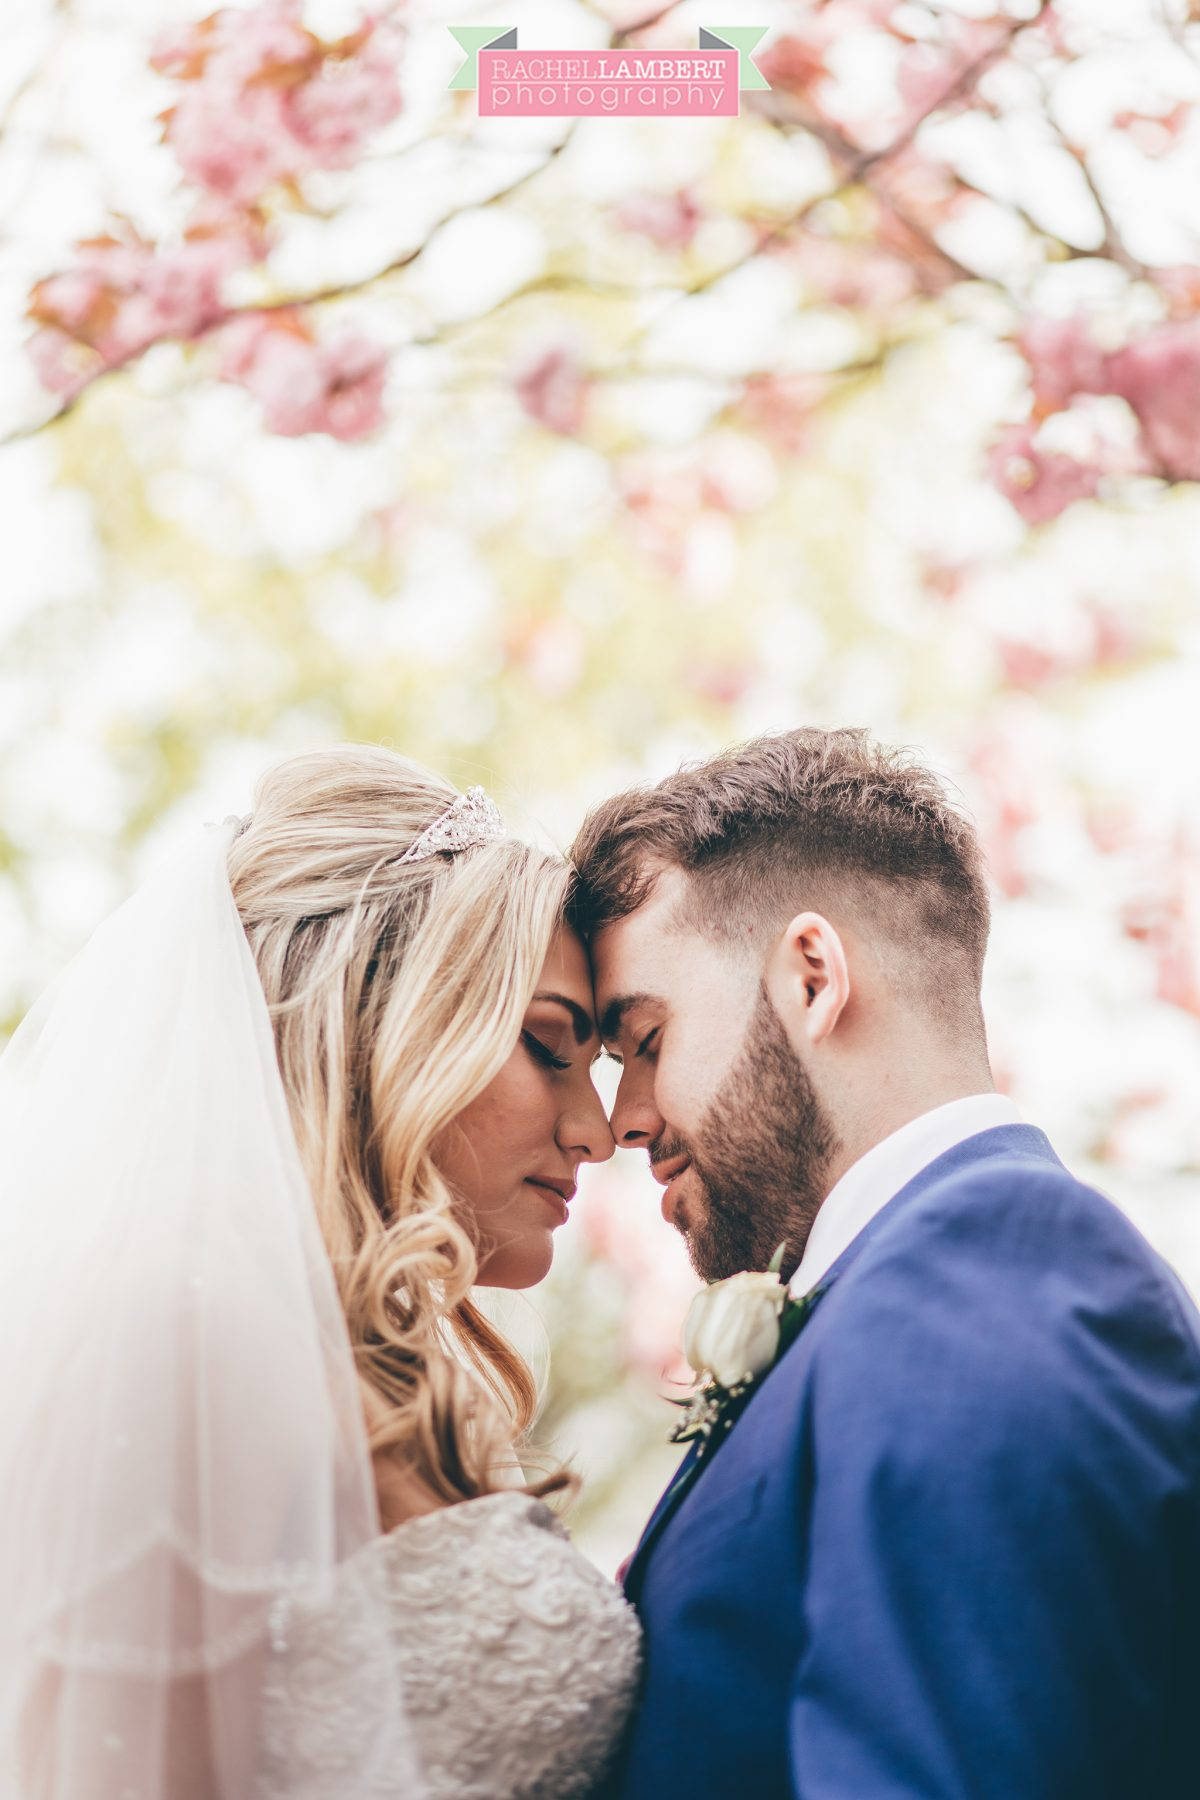 rachel lambert photography bride and groom holm house cherry blossoms